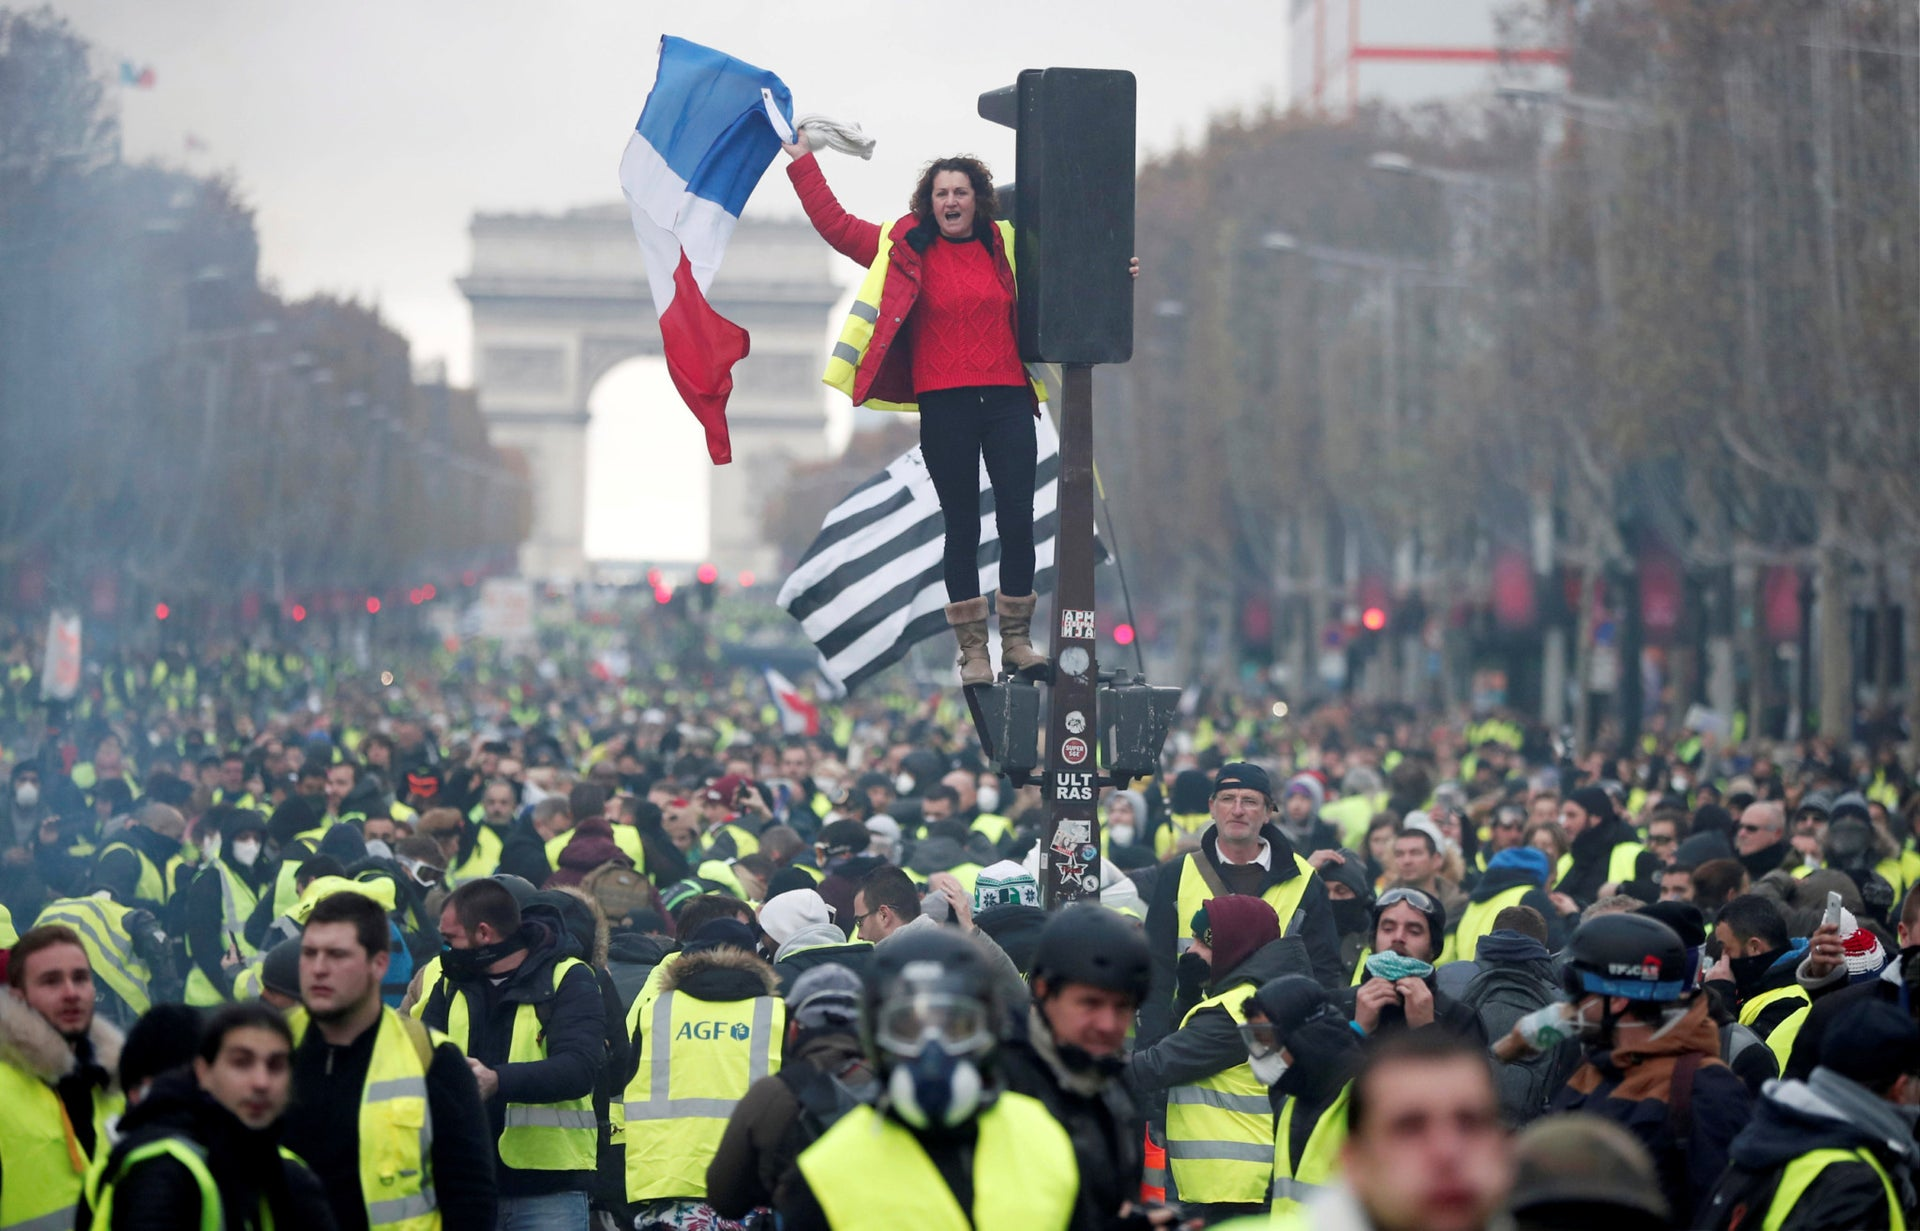 Yellow Vests protest in Paris, France, 2018.